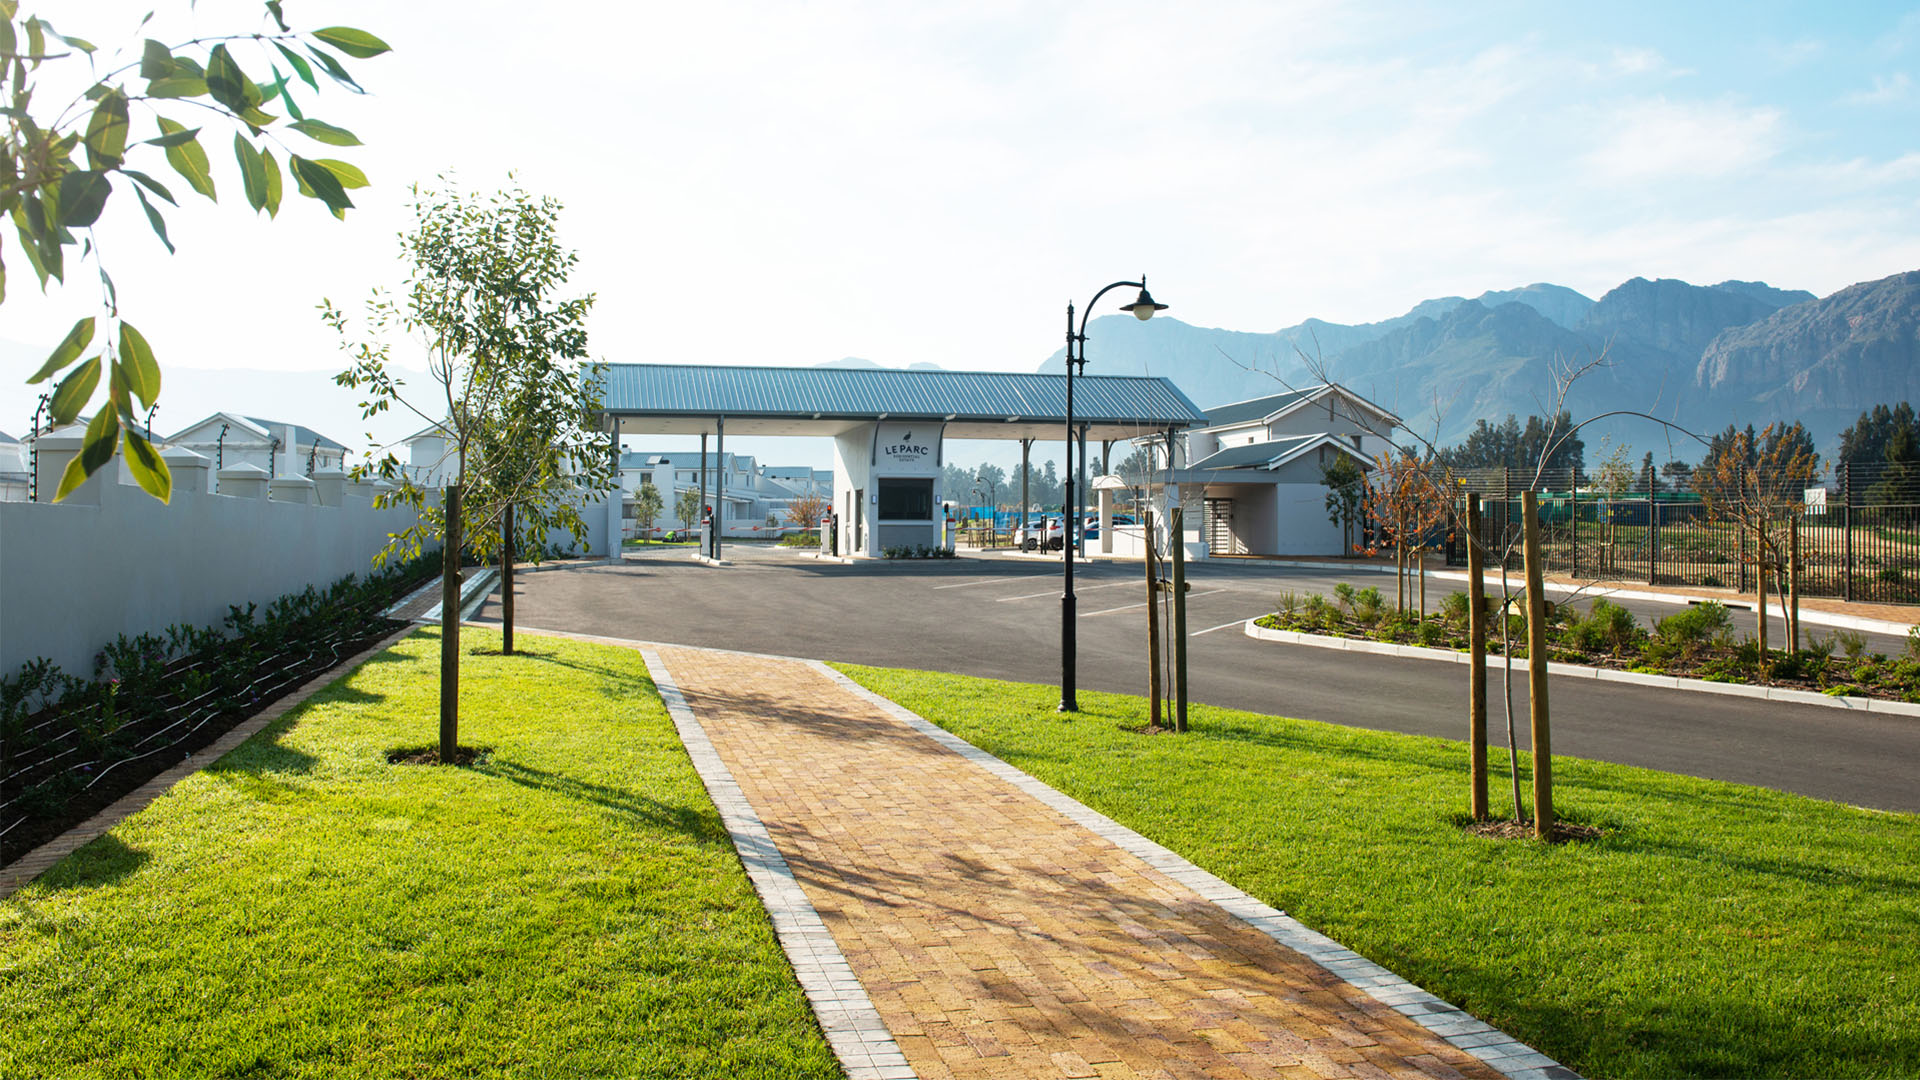 The gatehouse at Le Parc Residential Estate in Paarl